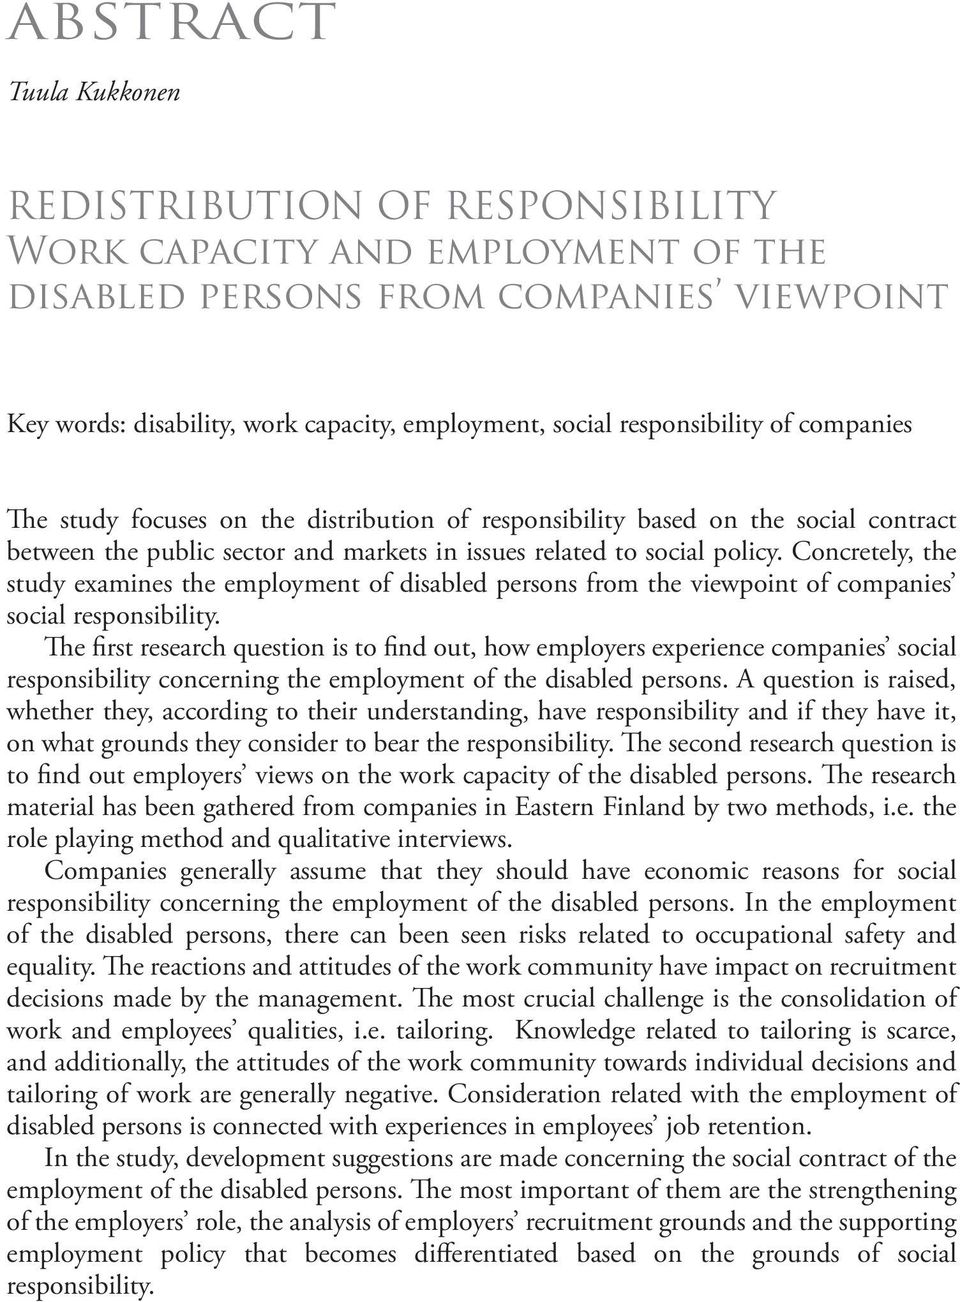 Concretely, the study examines the employment of disabled persons from the viewpoint of companies social responsibility.